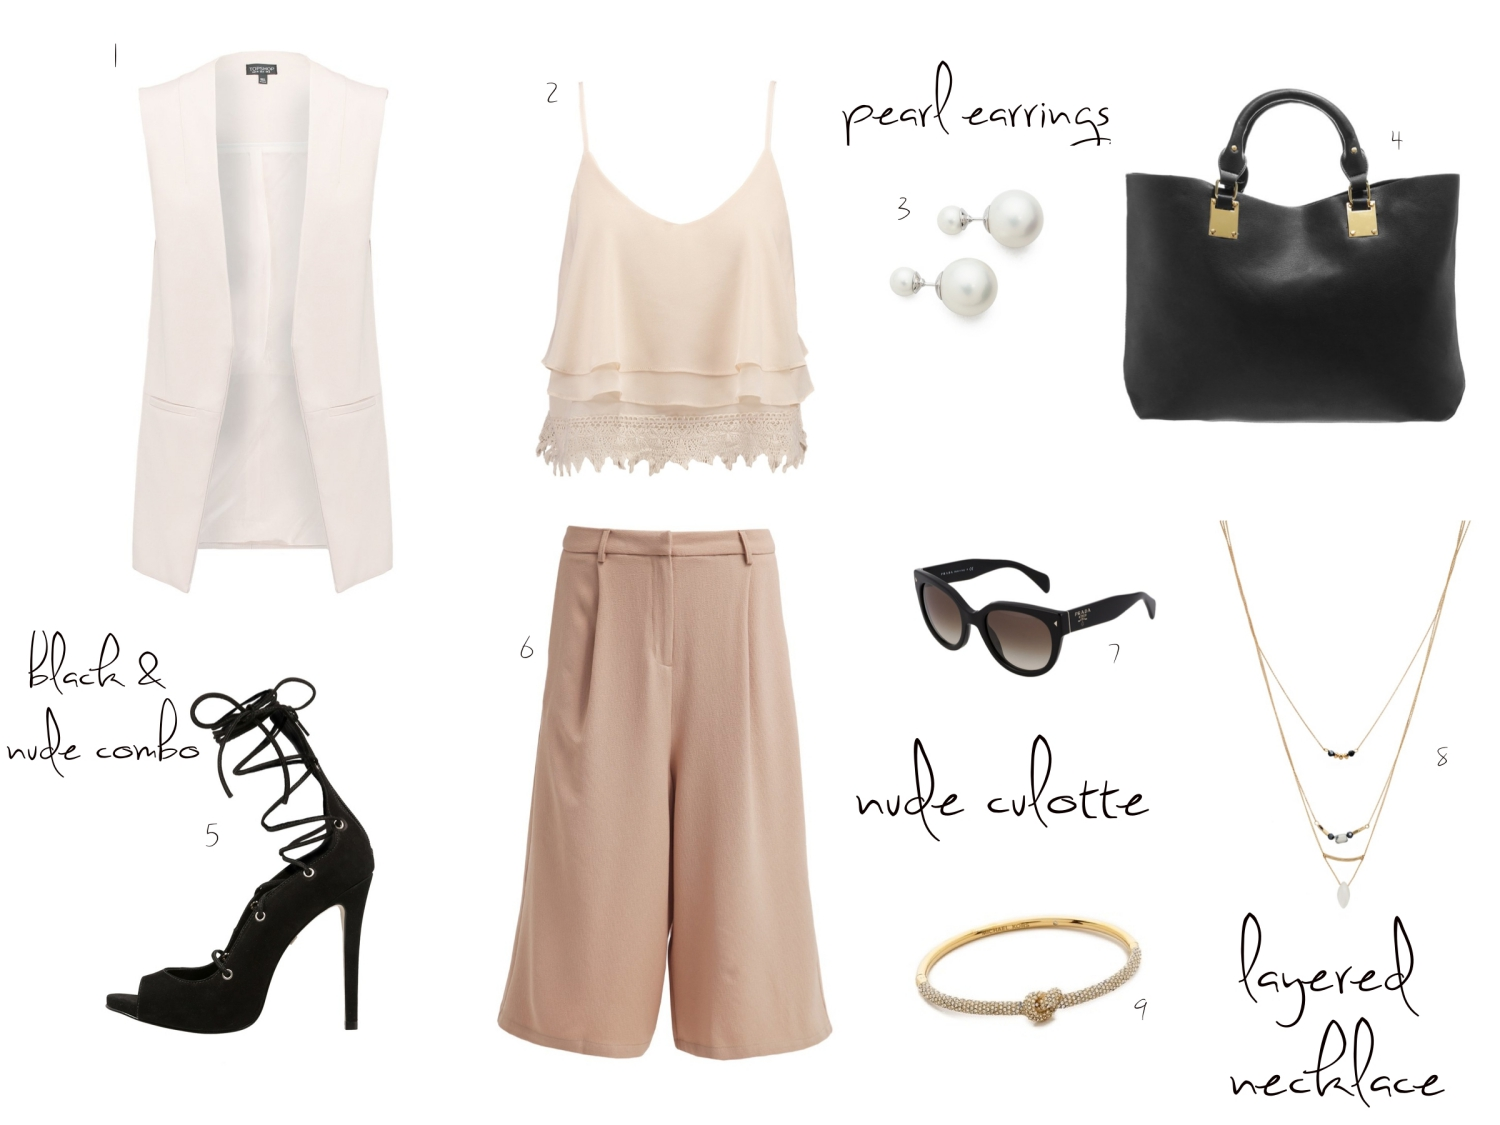 weekly-shopping-selection-culottes